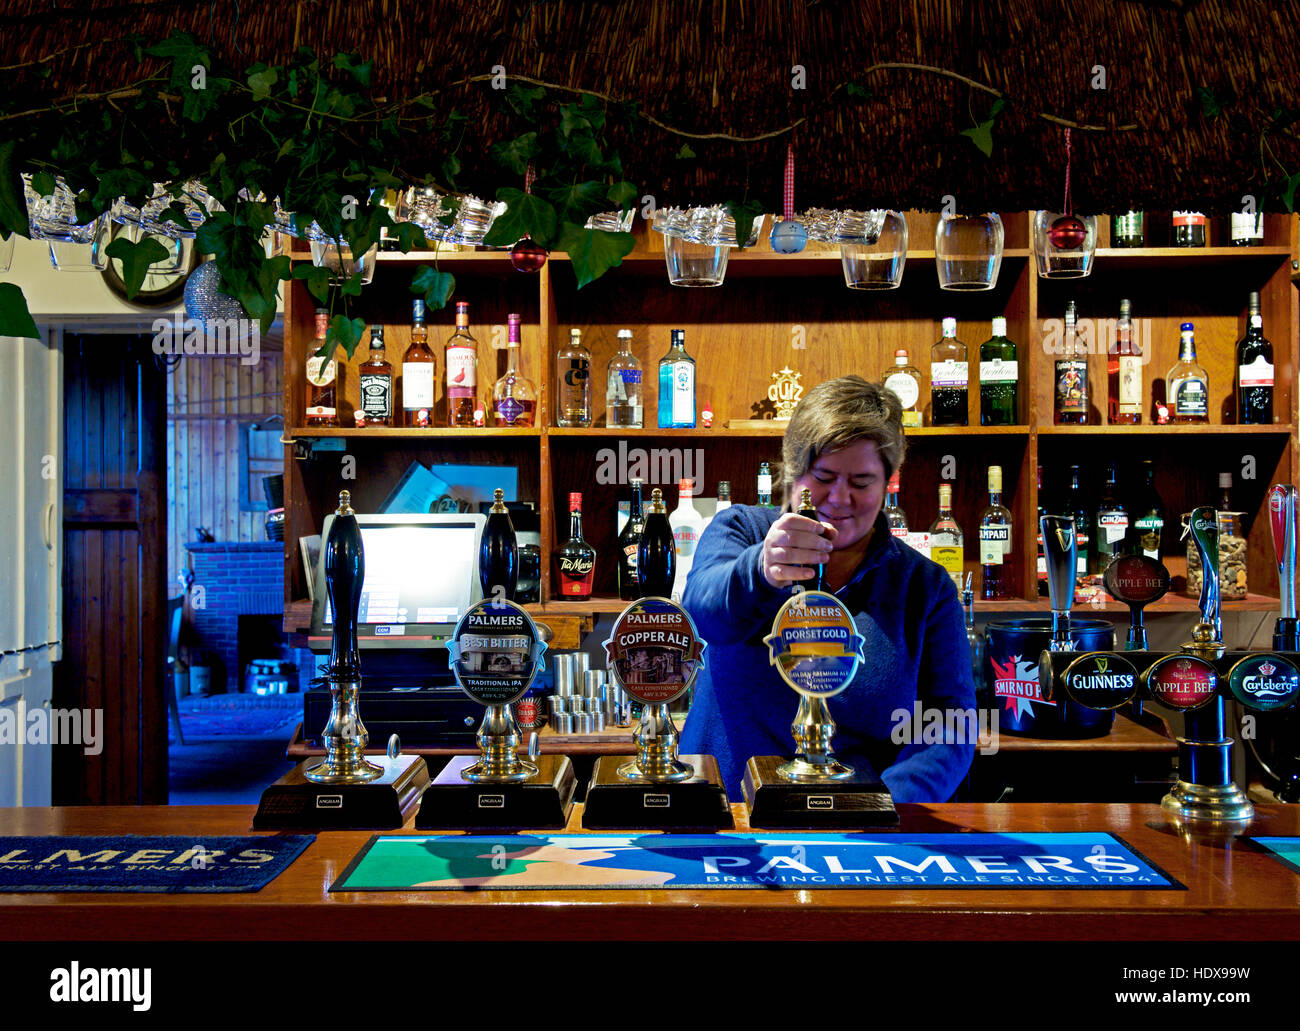 Landlady pulling pint of beer in the Three Horseshoes Inn, in the village of Powerstock, Dorset, England UK - Stock Image